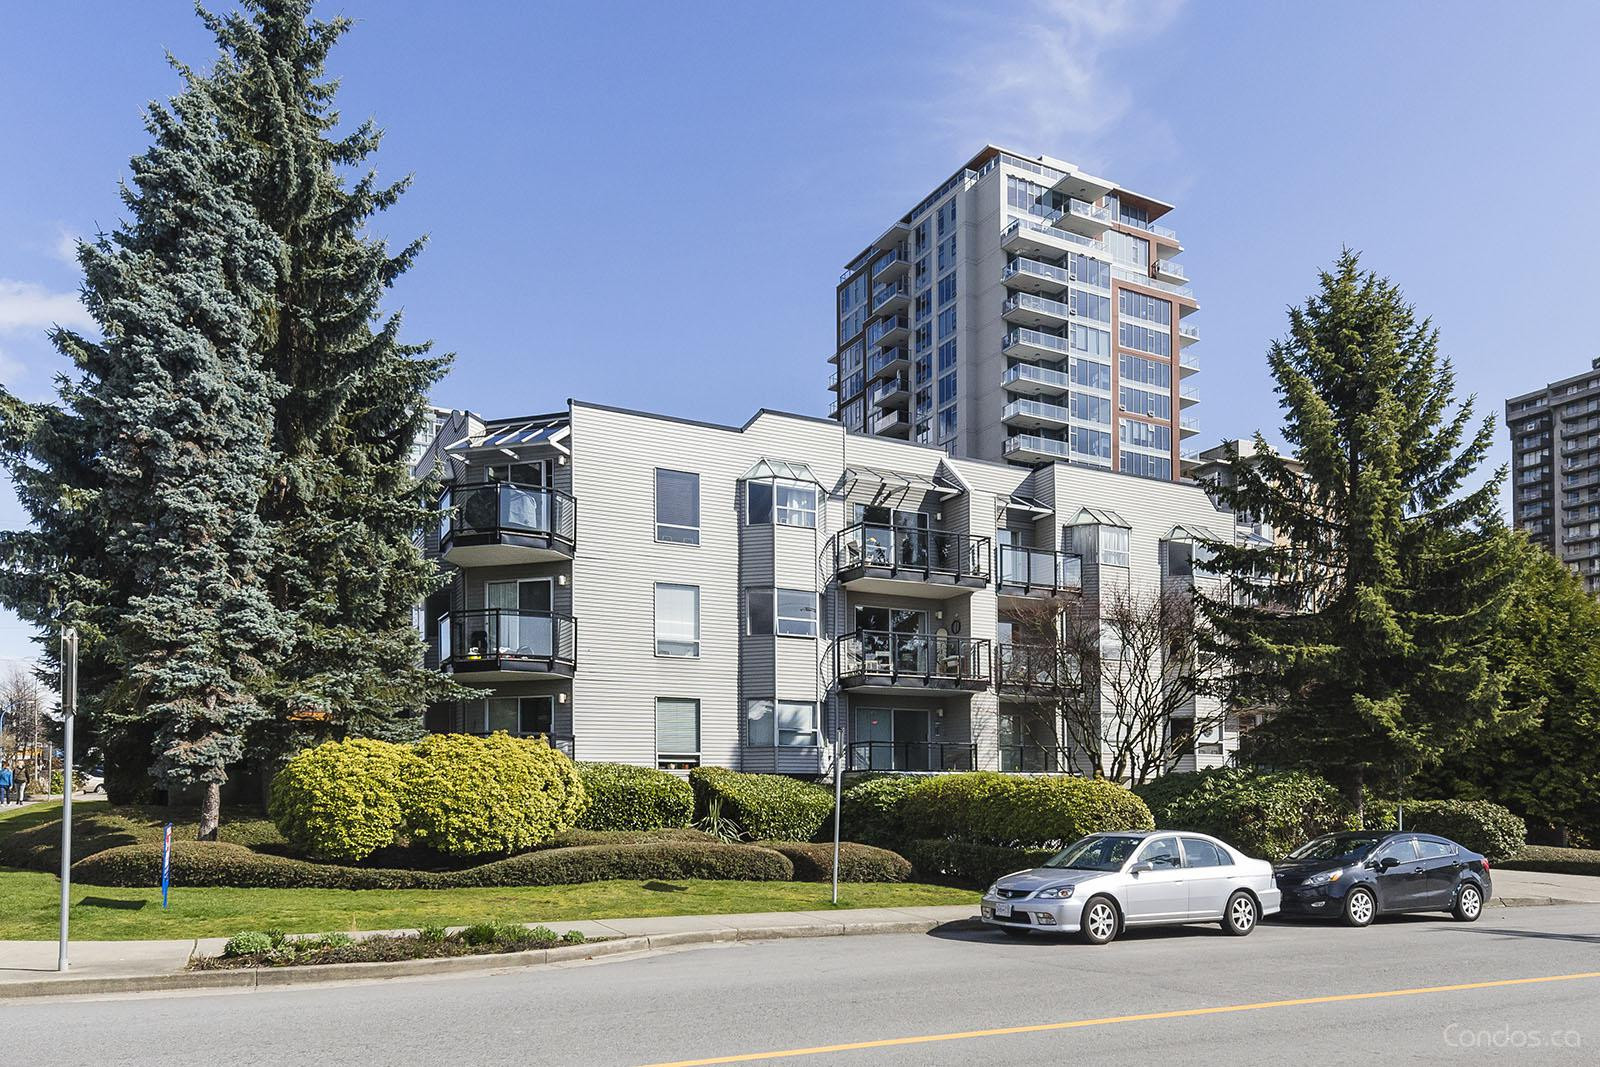 The Chesters at 1550 Chesterfield Ave, North Vancouver City 1